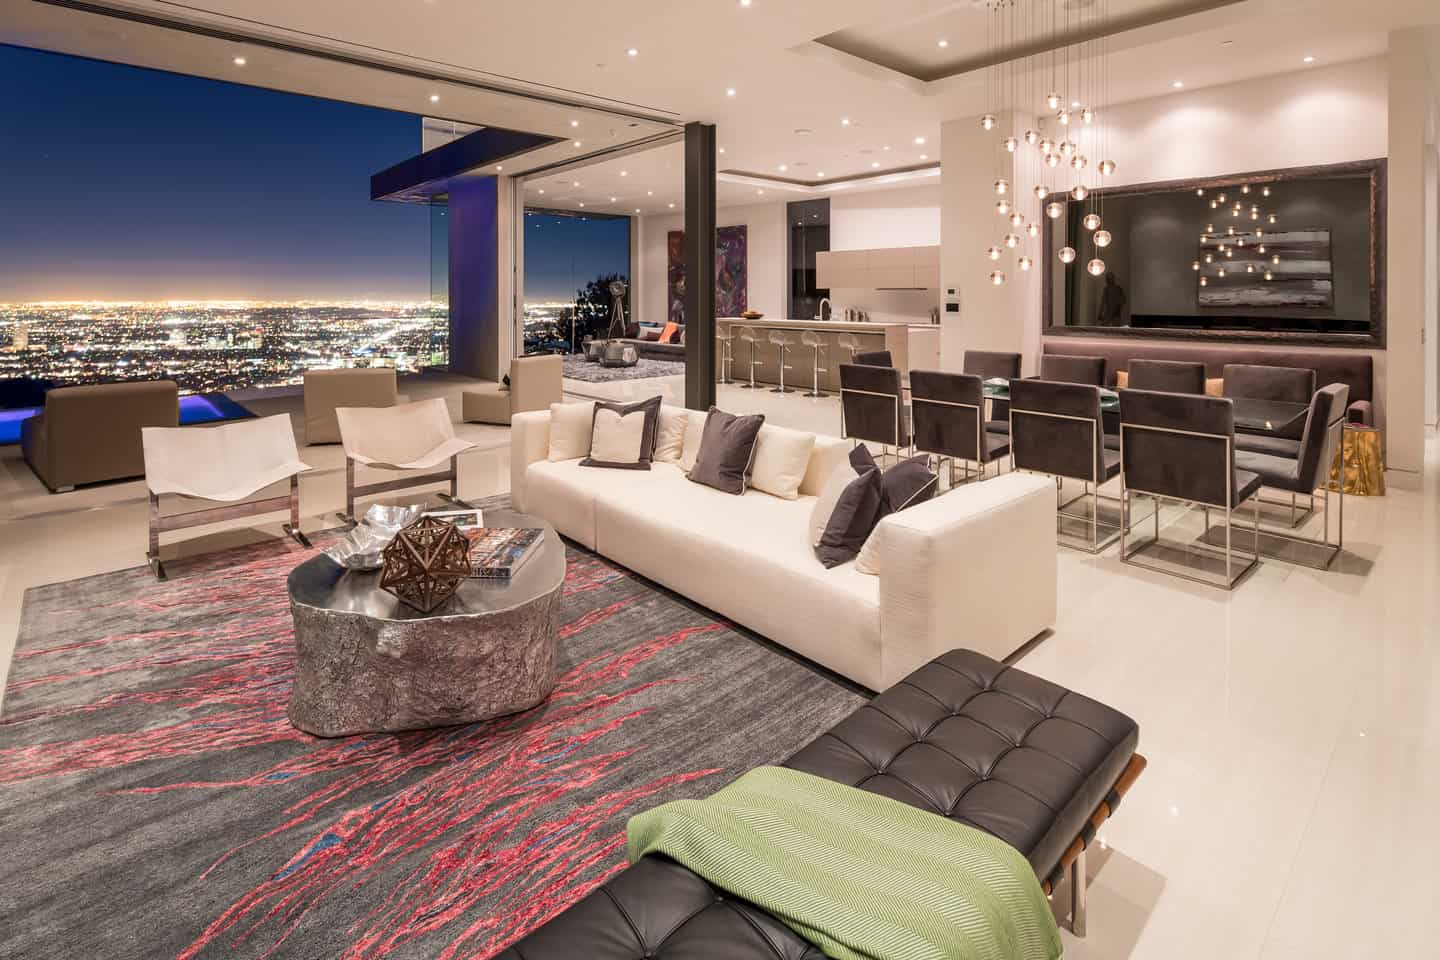 Architecture-Contemporary-Residence-Noesis Group-01-1 Kindesign